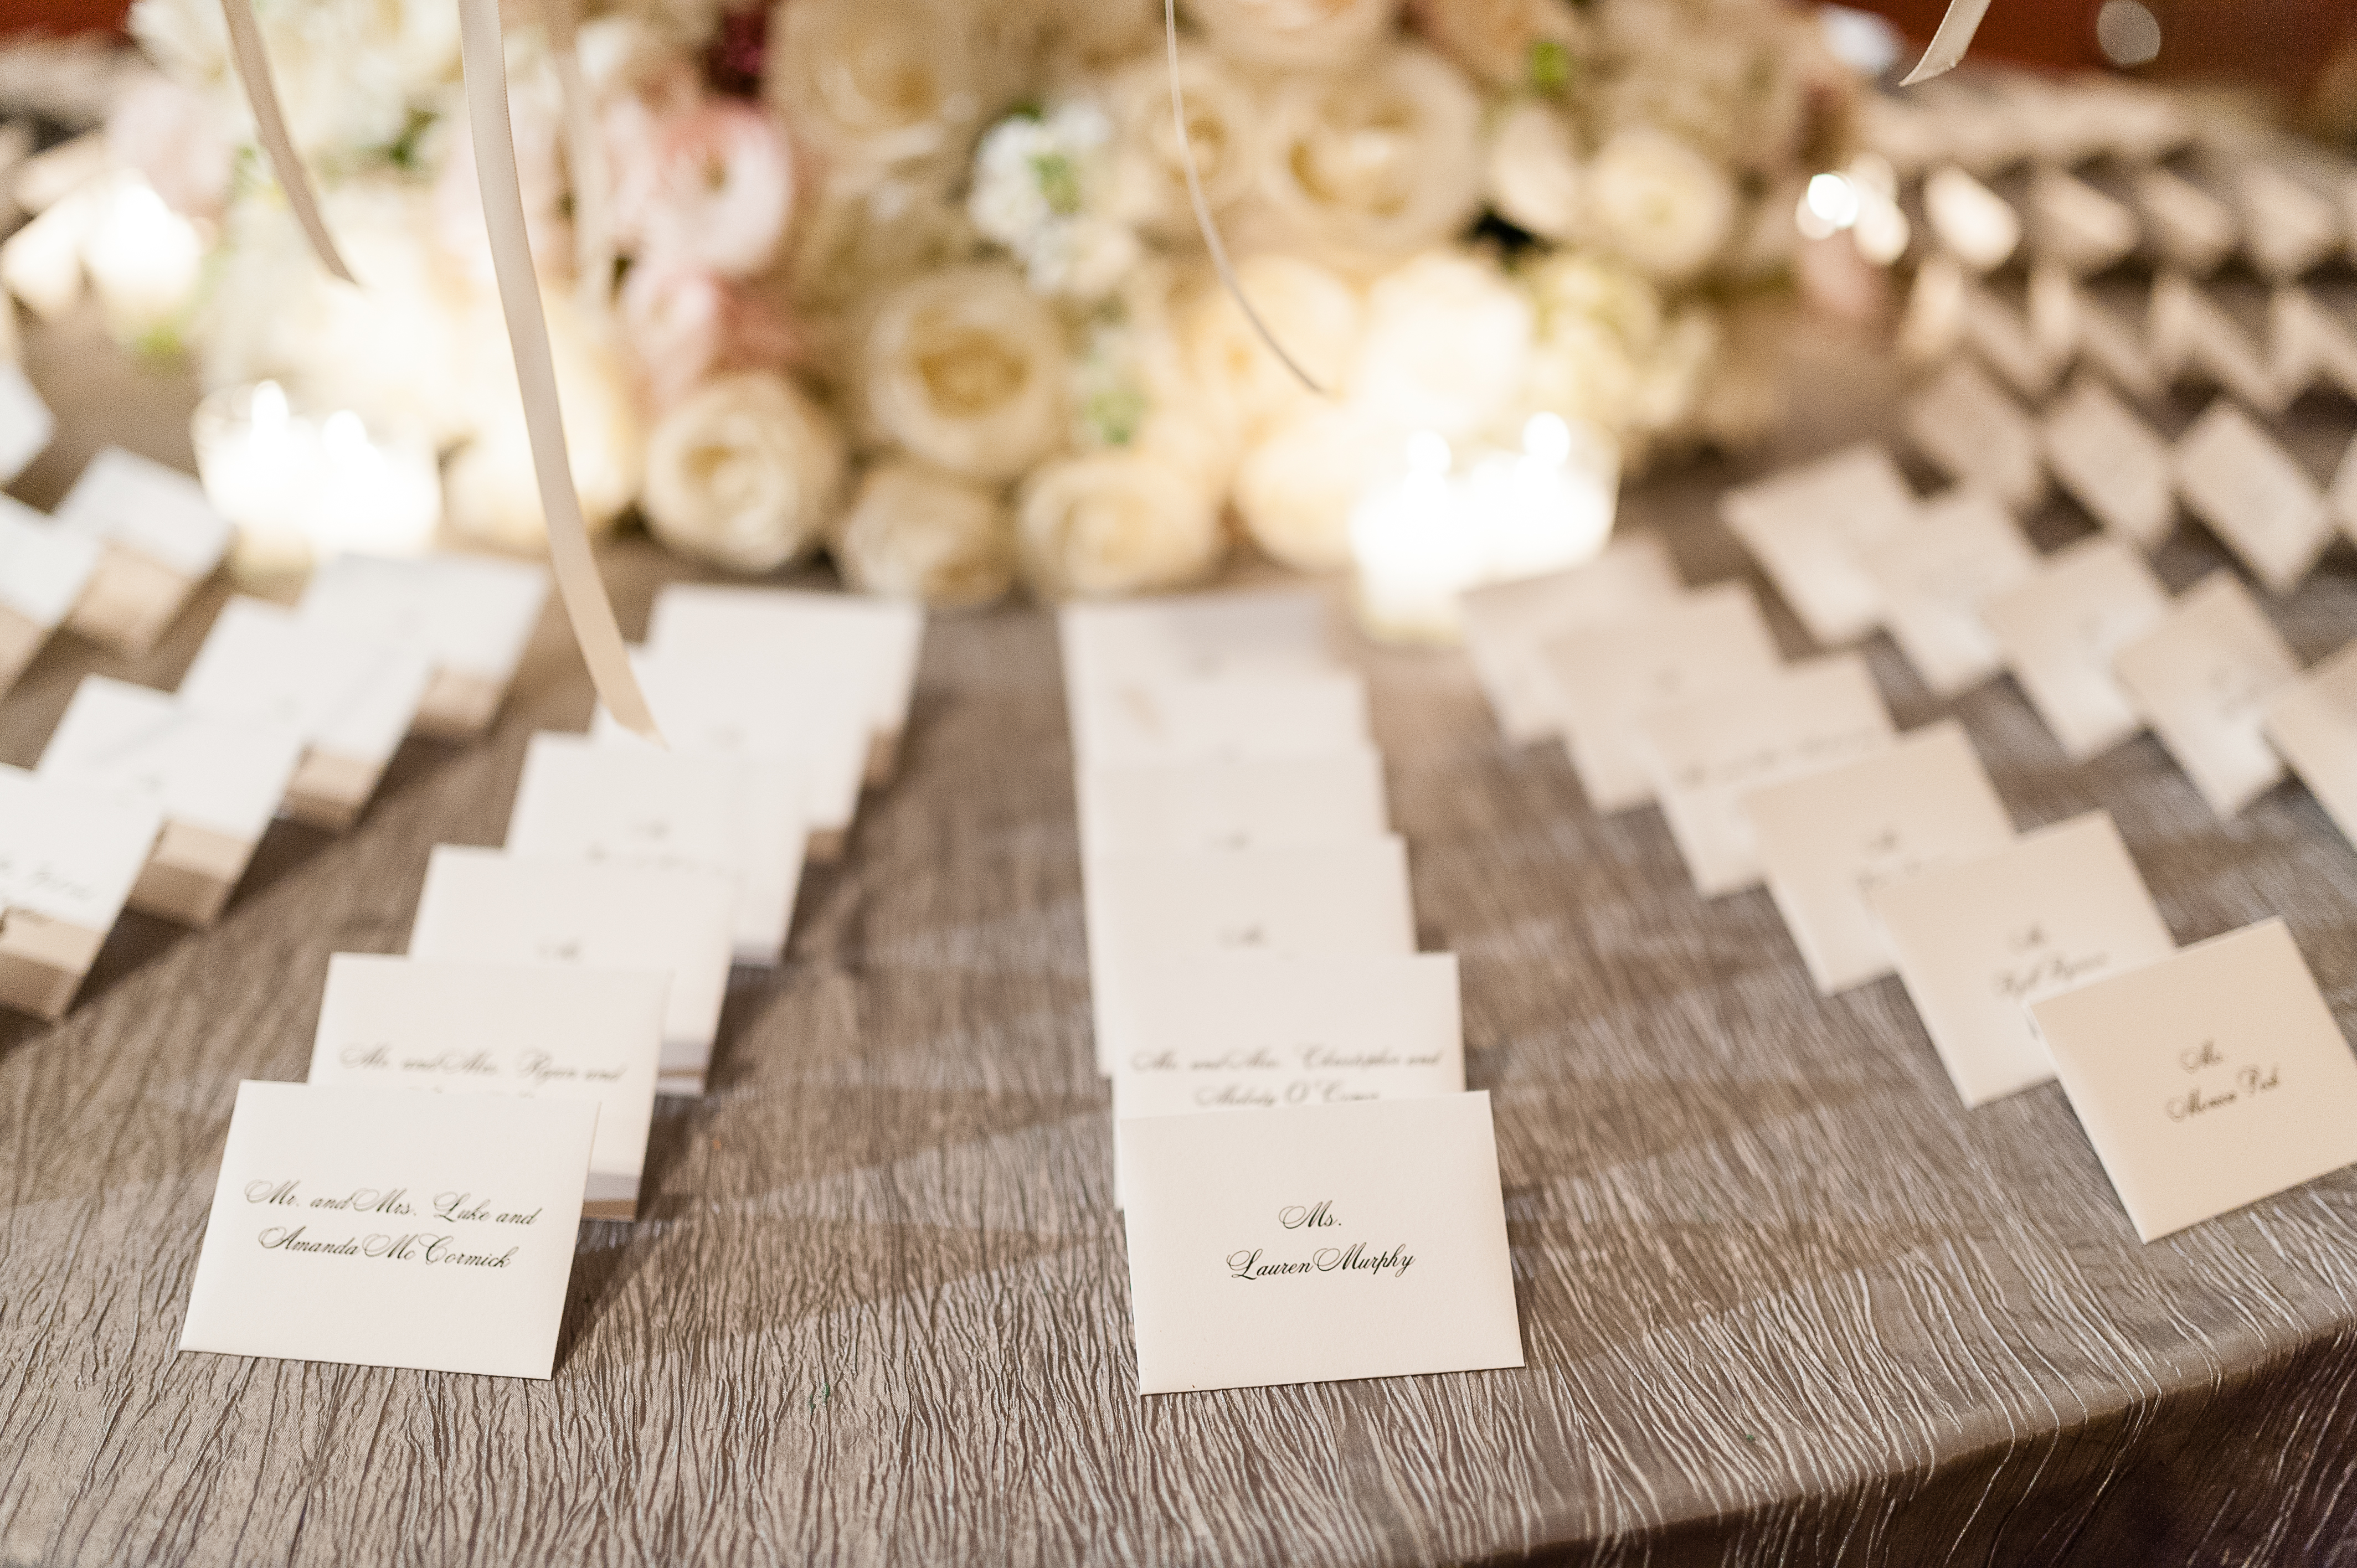 Escort card design and table cloth